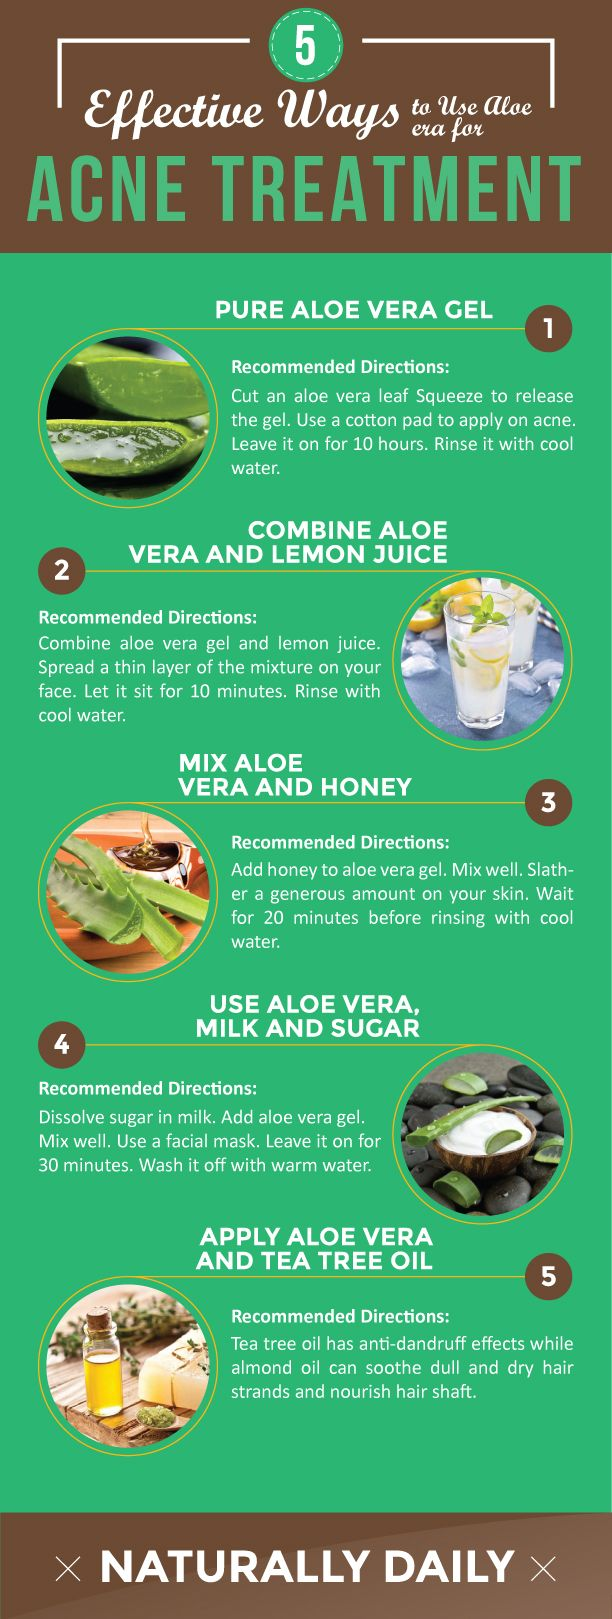 Aloe Vera for Acne: 5 Effective Ways to Use